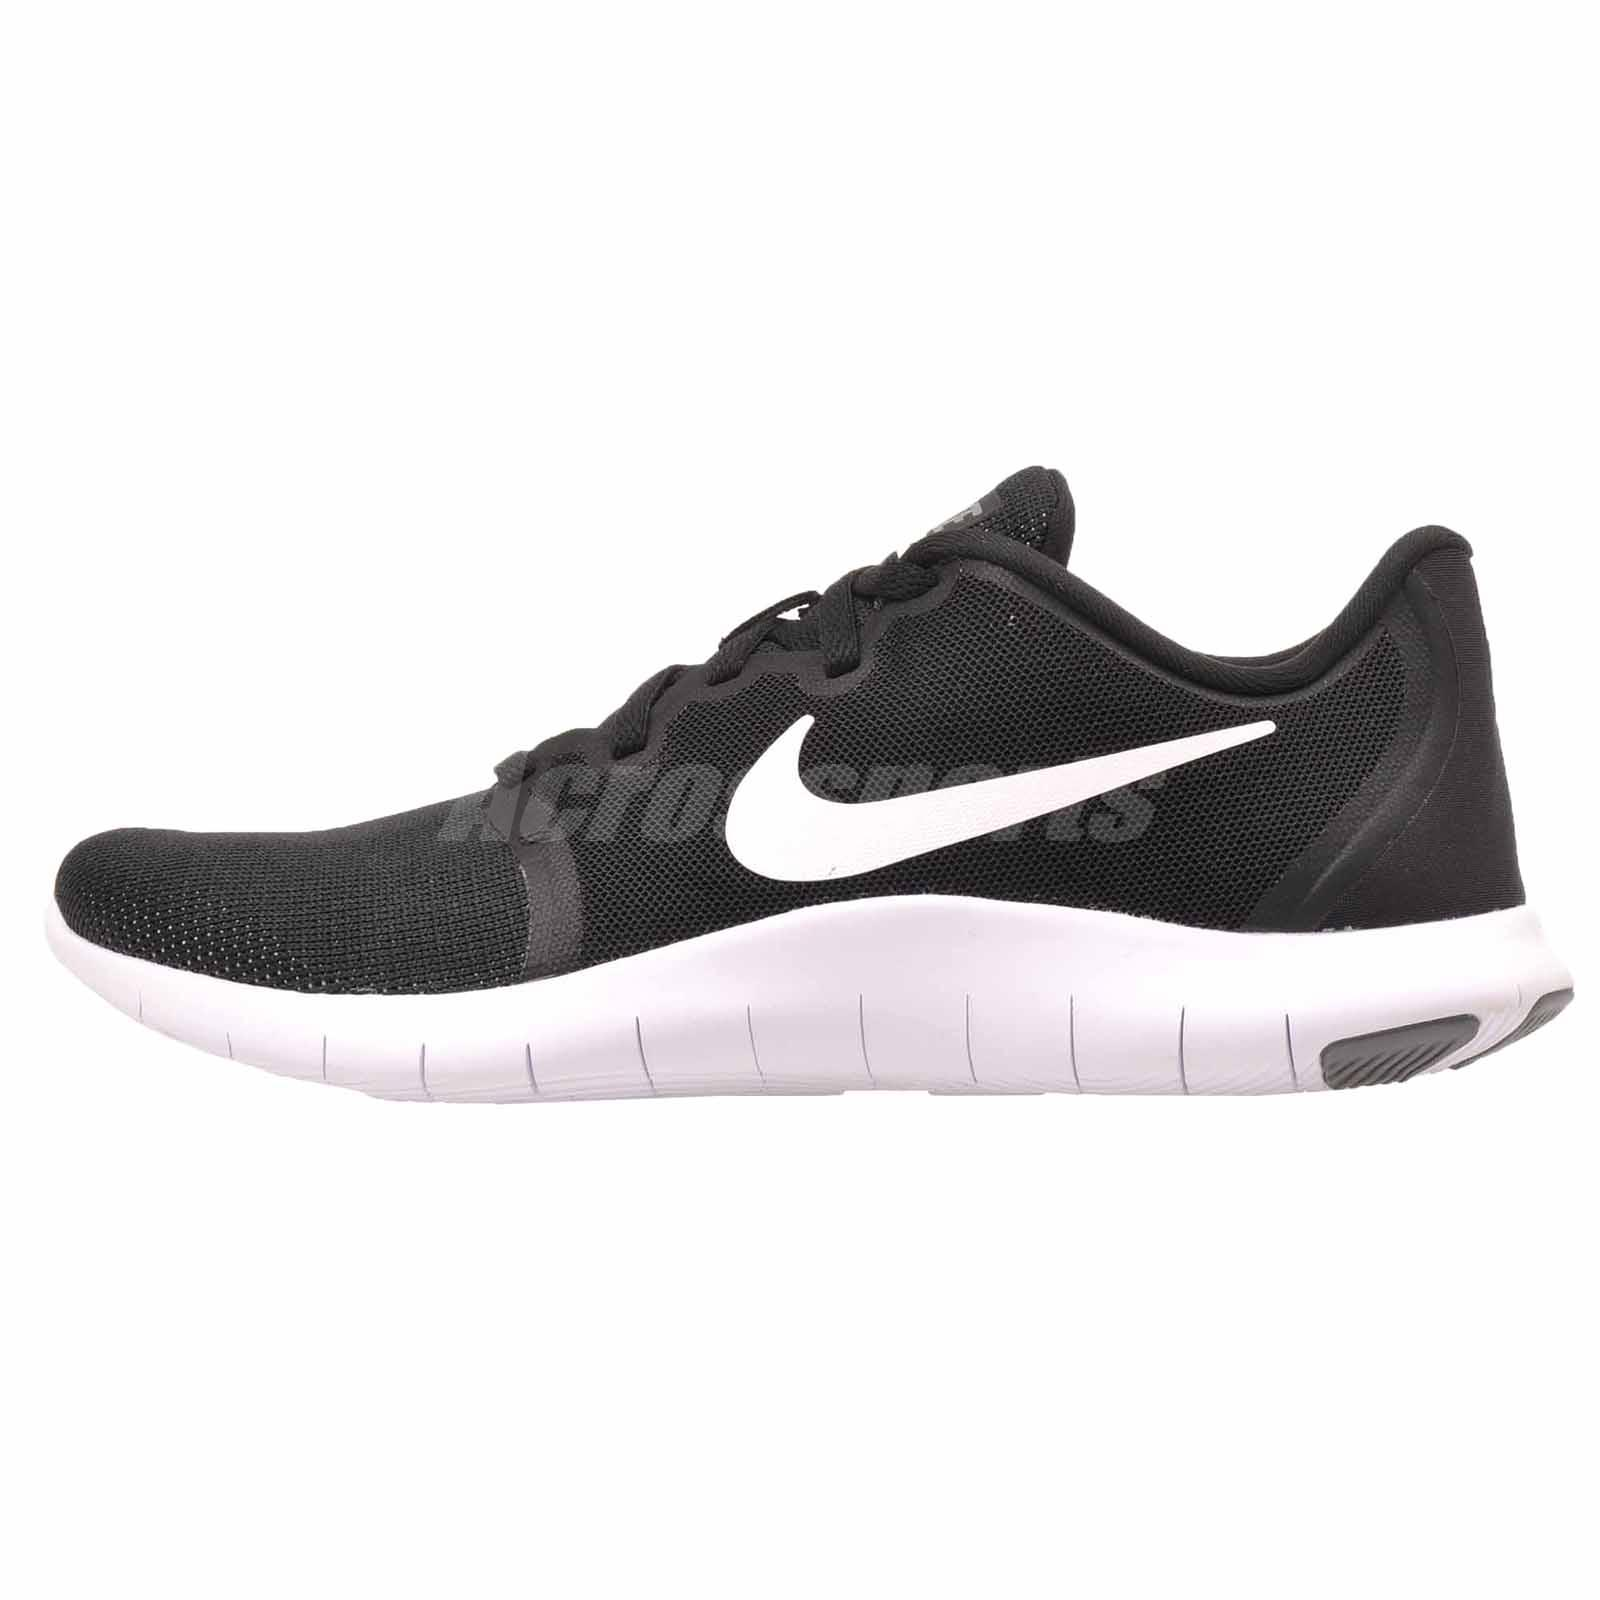 1e9cf67a0303 Details about Nike Wmns Flex Contact 2 Running Training Womens Shoes Black  White AA7409-001